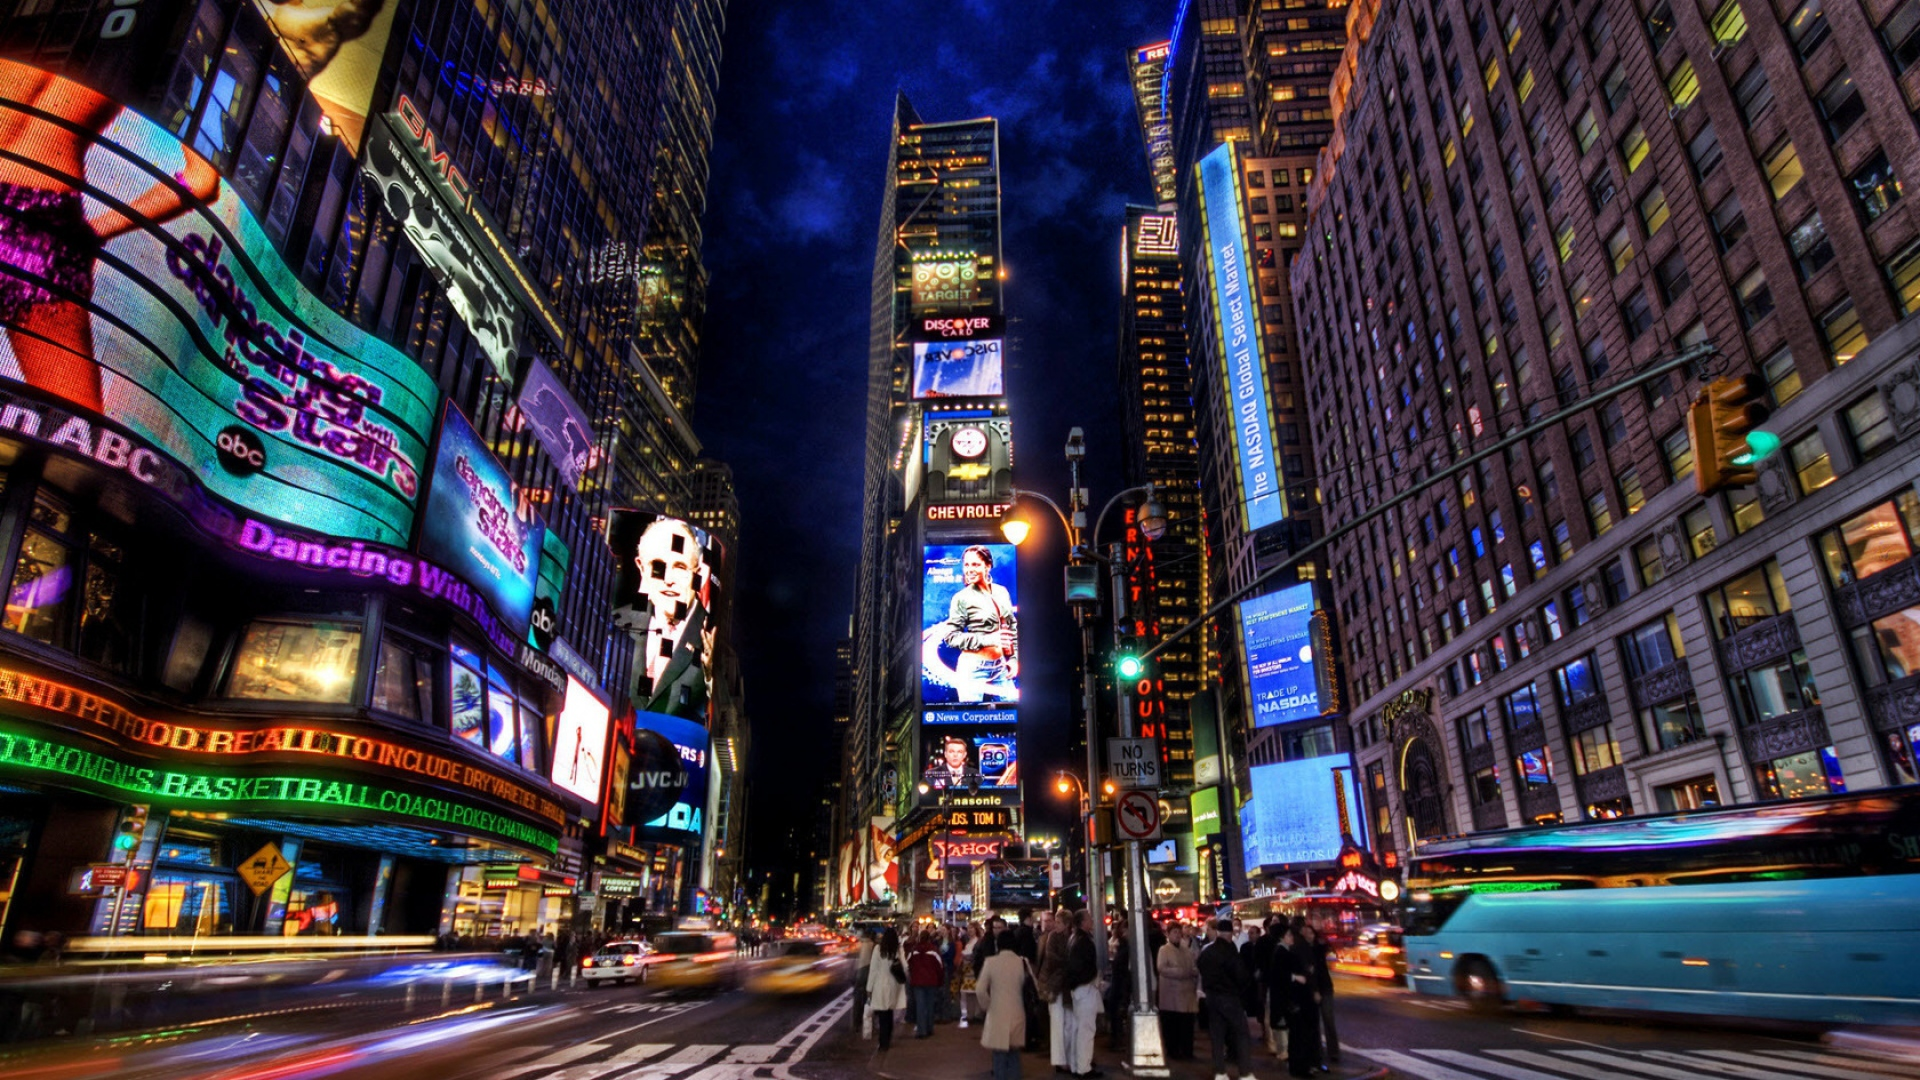 Download Wallpaper 1920x1080 New York Times Square Street Night